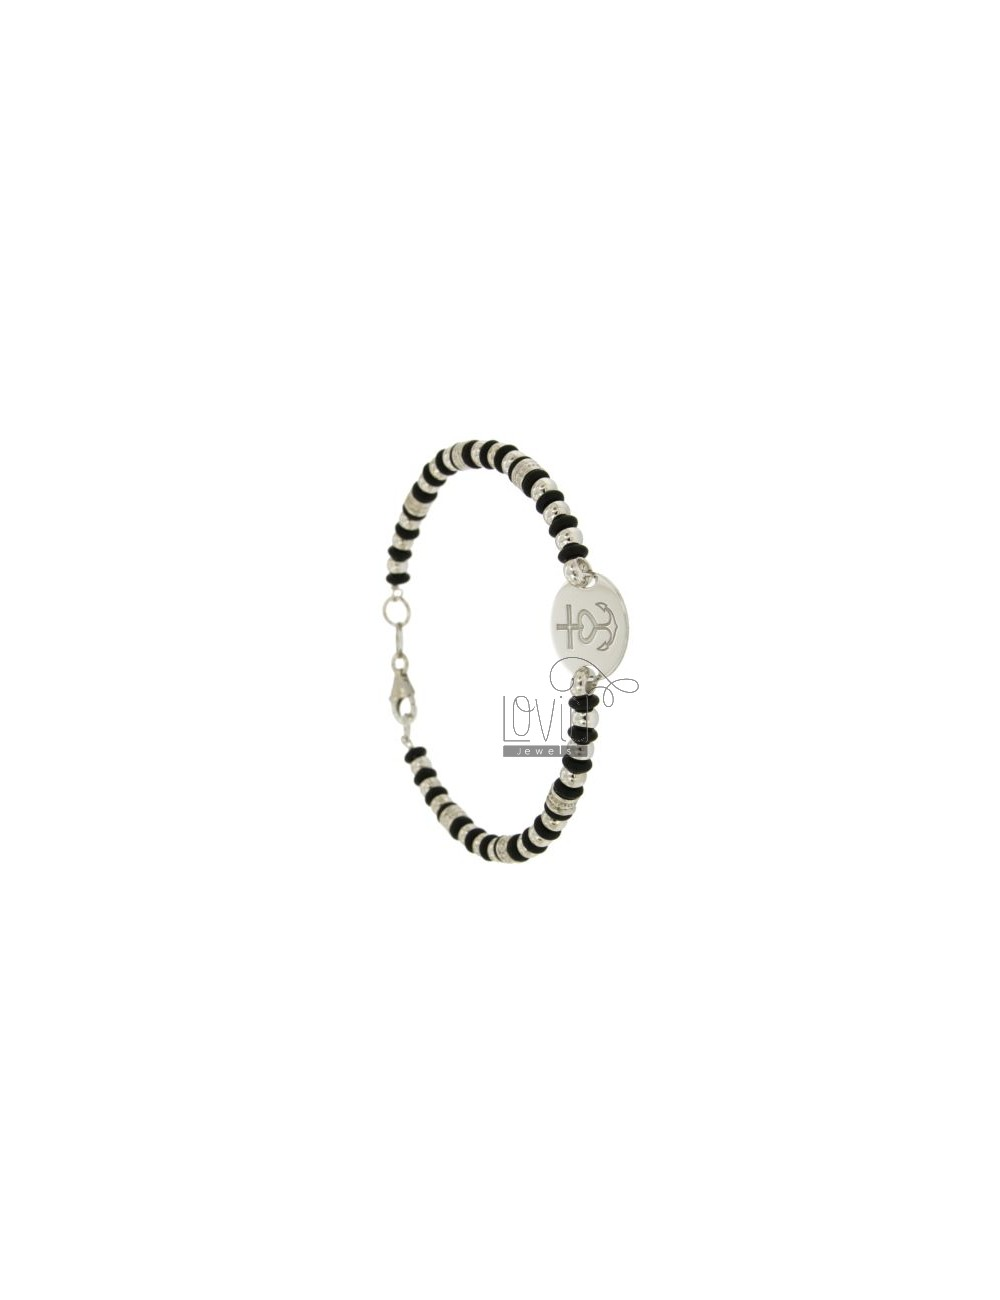 BRACELET WITH BALLS AND WASHERS RUBBER &39ROUND WITH CENTRAL WITH SENTENCE AGAIN AND HEART IN SILVER RHODIUM TIT 925 ‰ CM 20